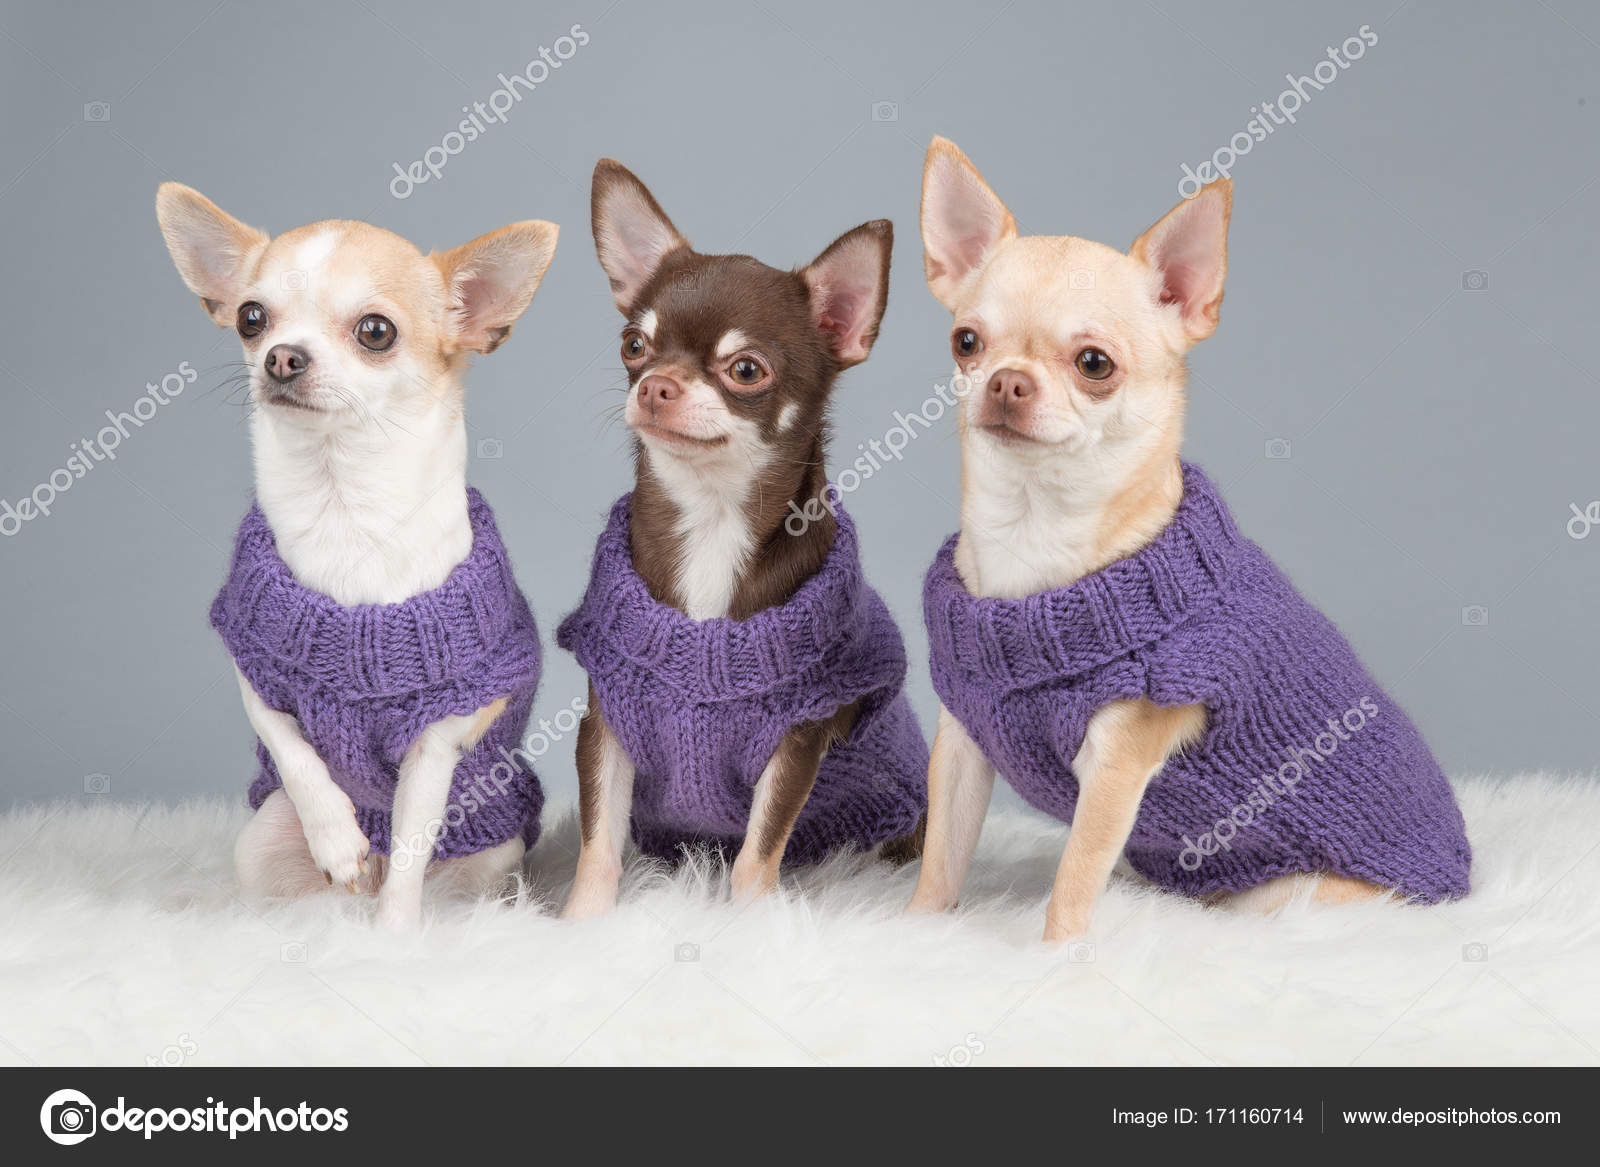 Three Cute Sitting Chihuahua Dogs Wearing Purple Knitted Sweater